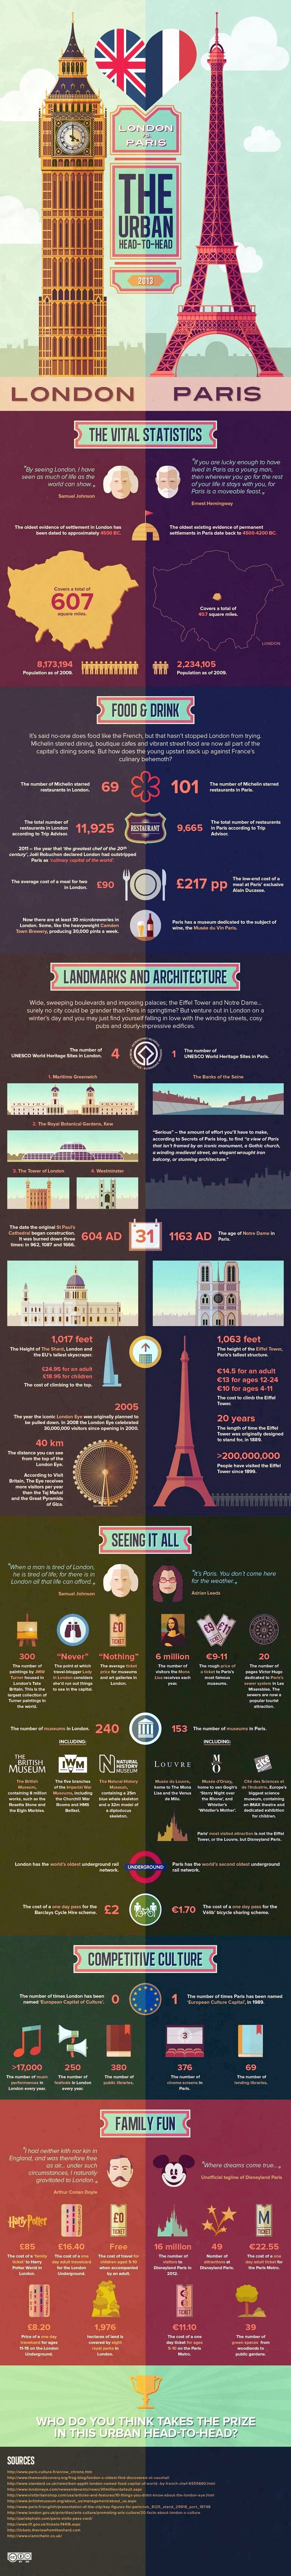 London and Paris, comparison and vital statistics